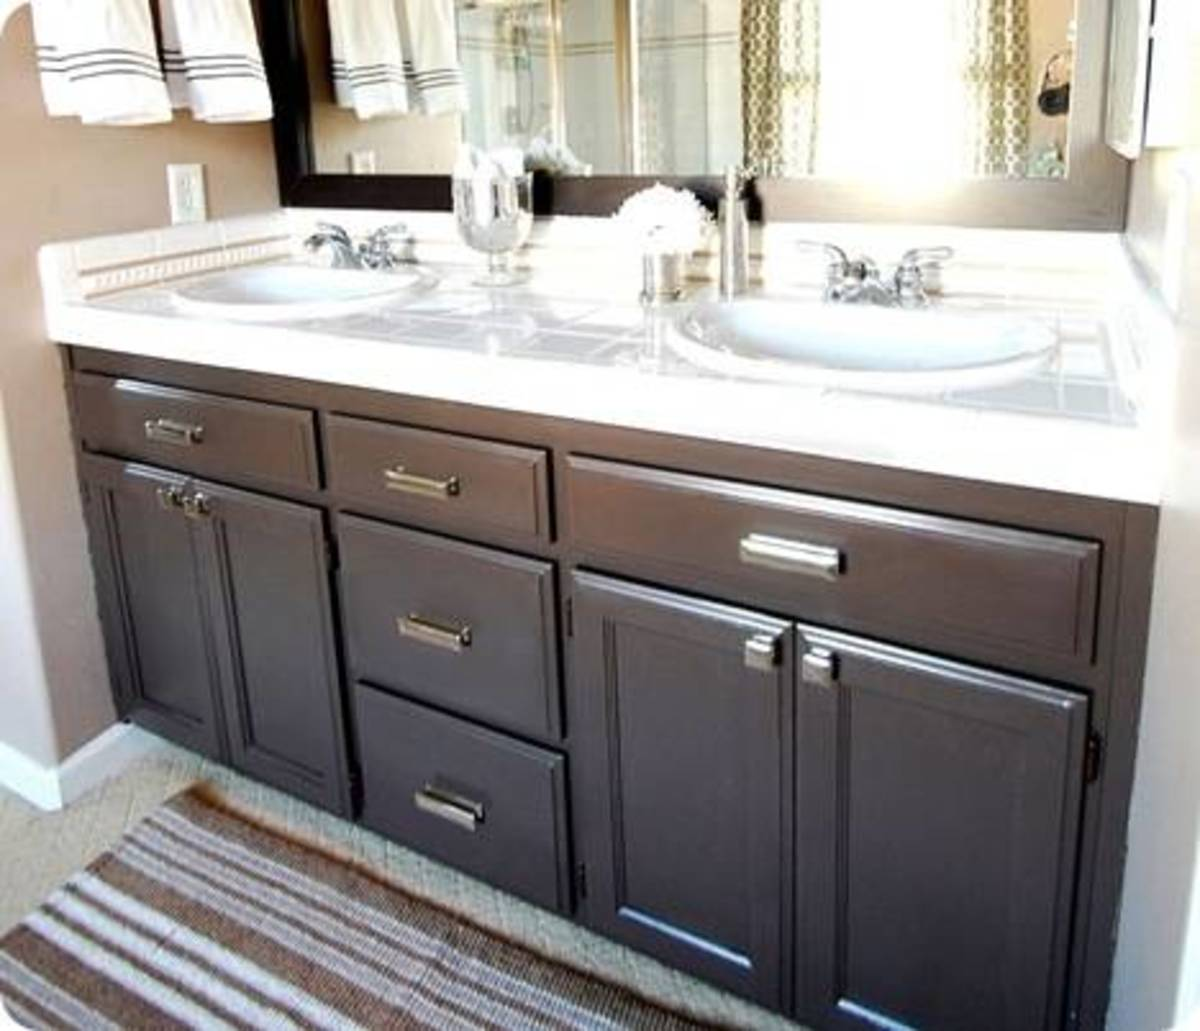 Kate updated her old vanity with a rich espresso finish and added chrome hardware.  Notice the counter top is still the same yet it looks like a completely new vanity.